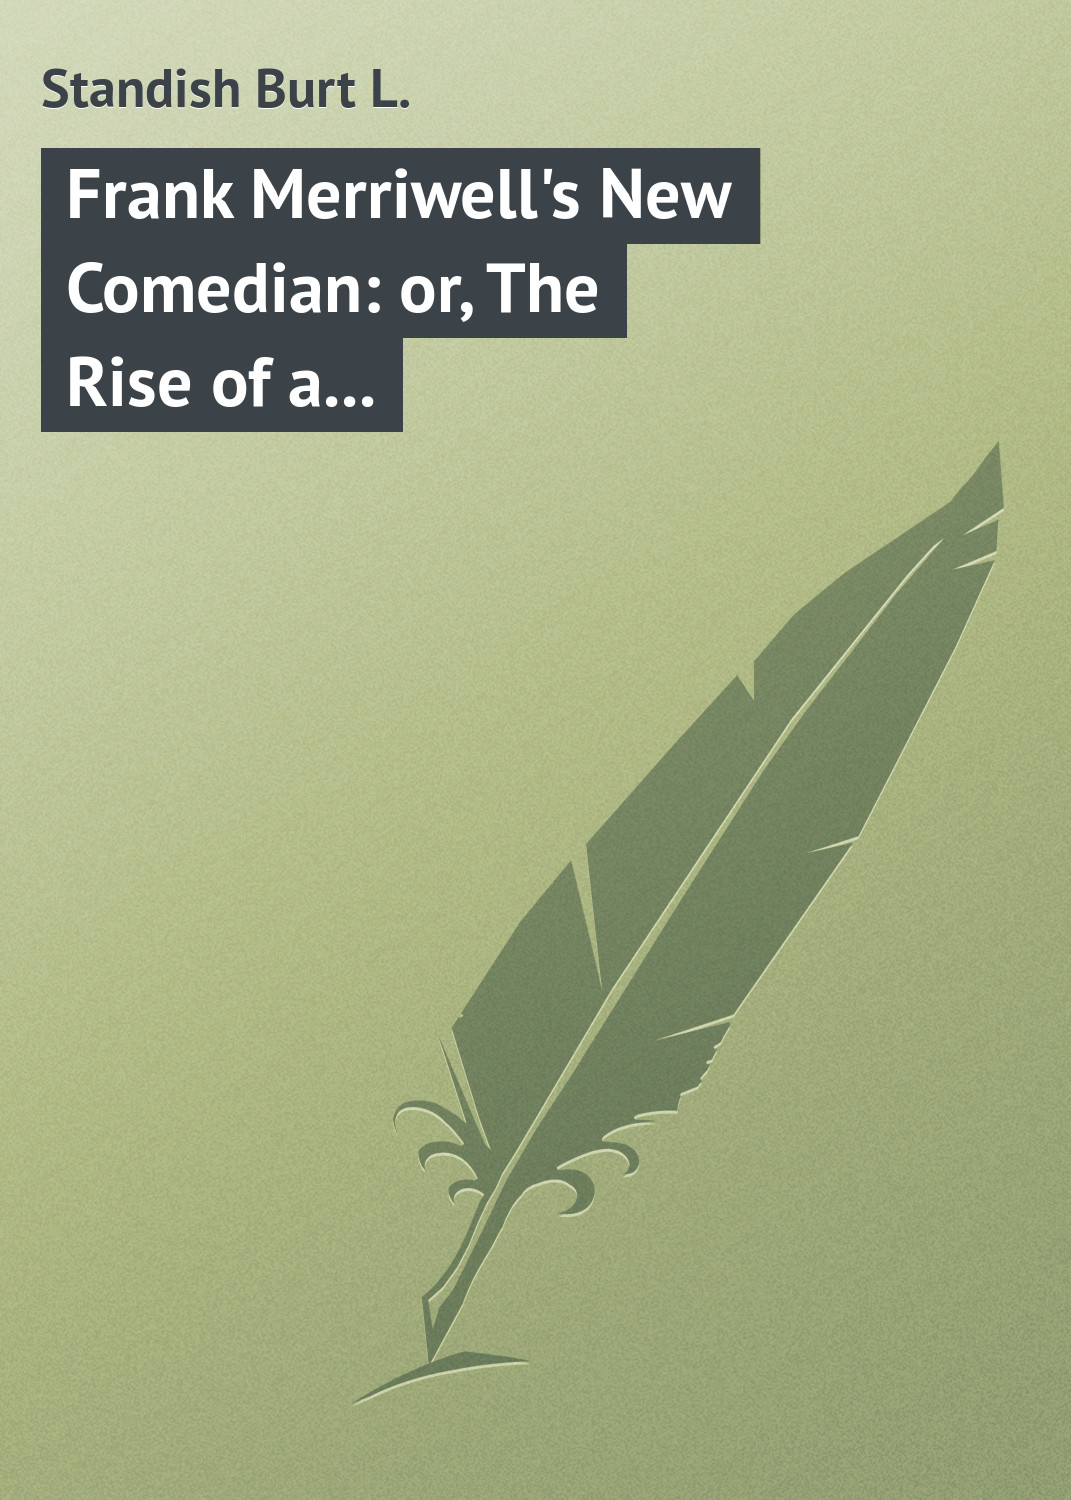 Frank Merriwell's New Comedian: or, The Rise of a Star